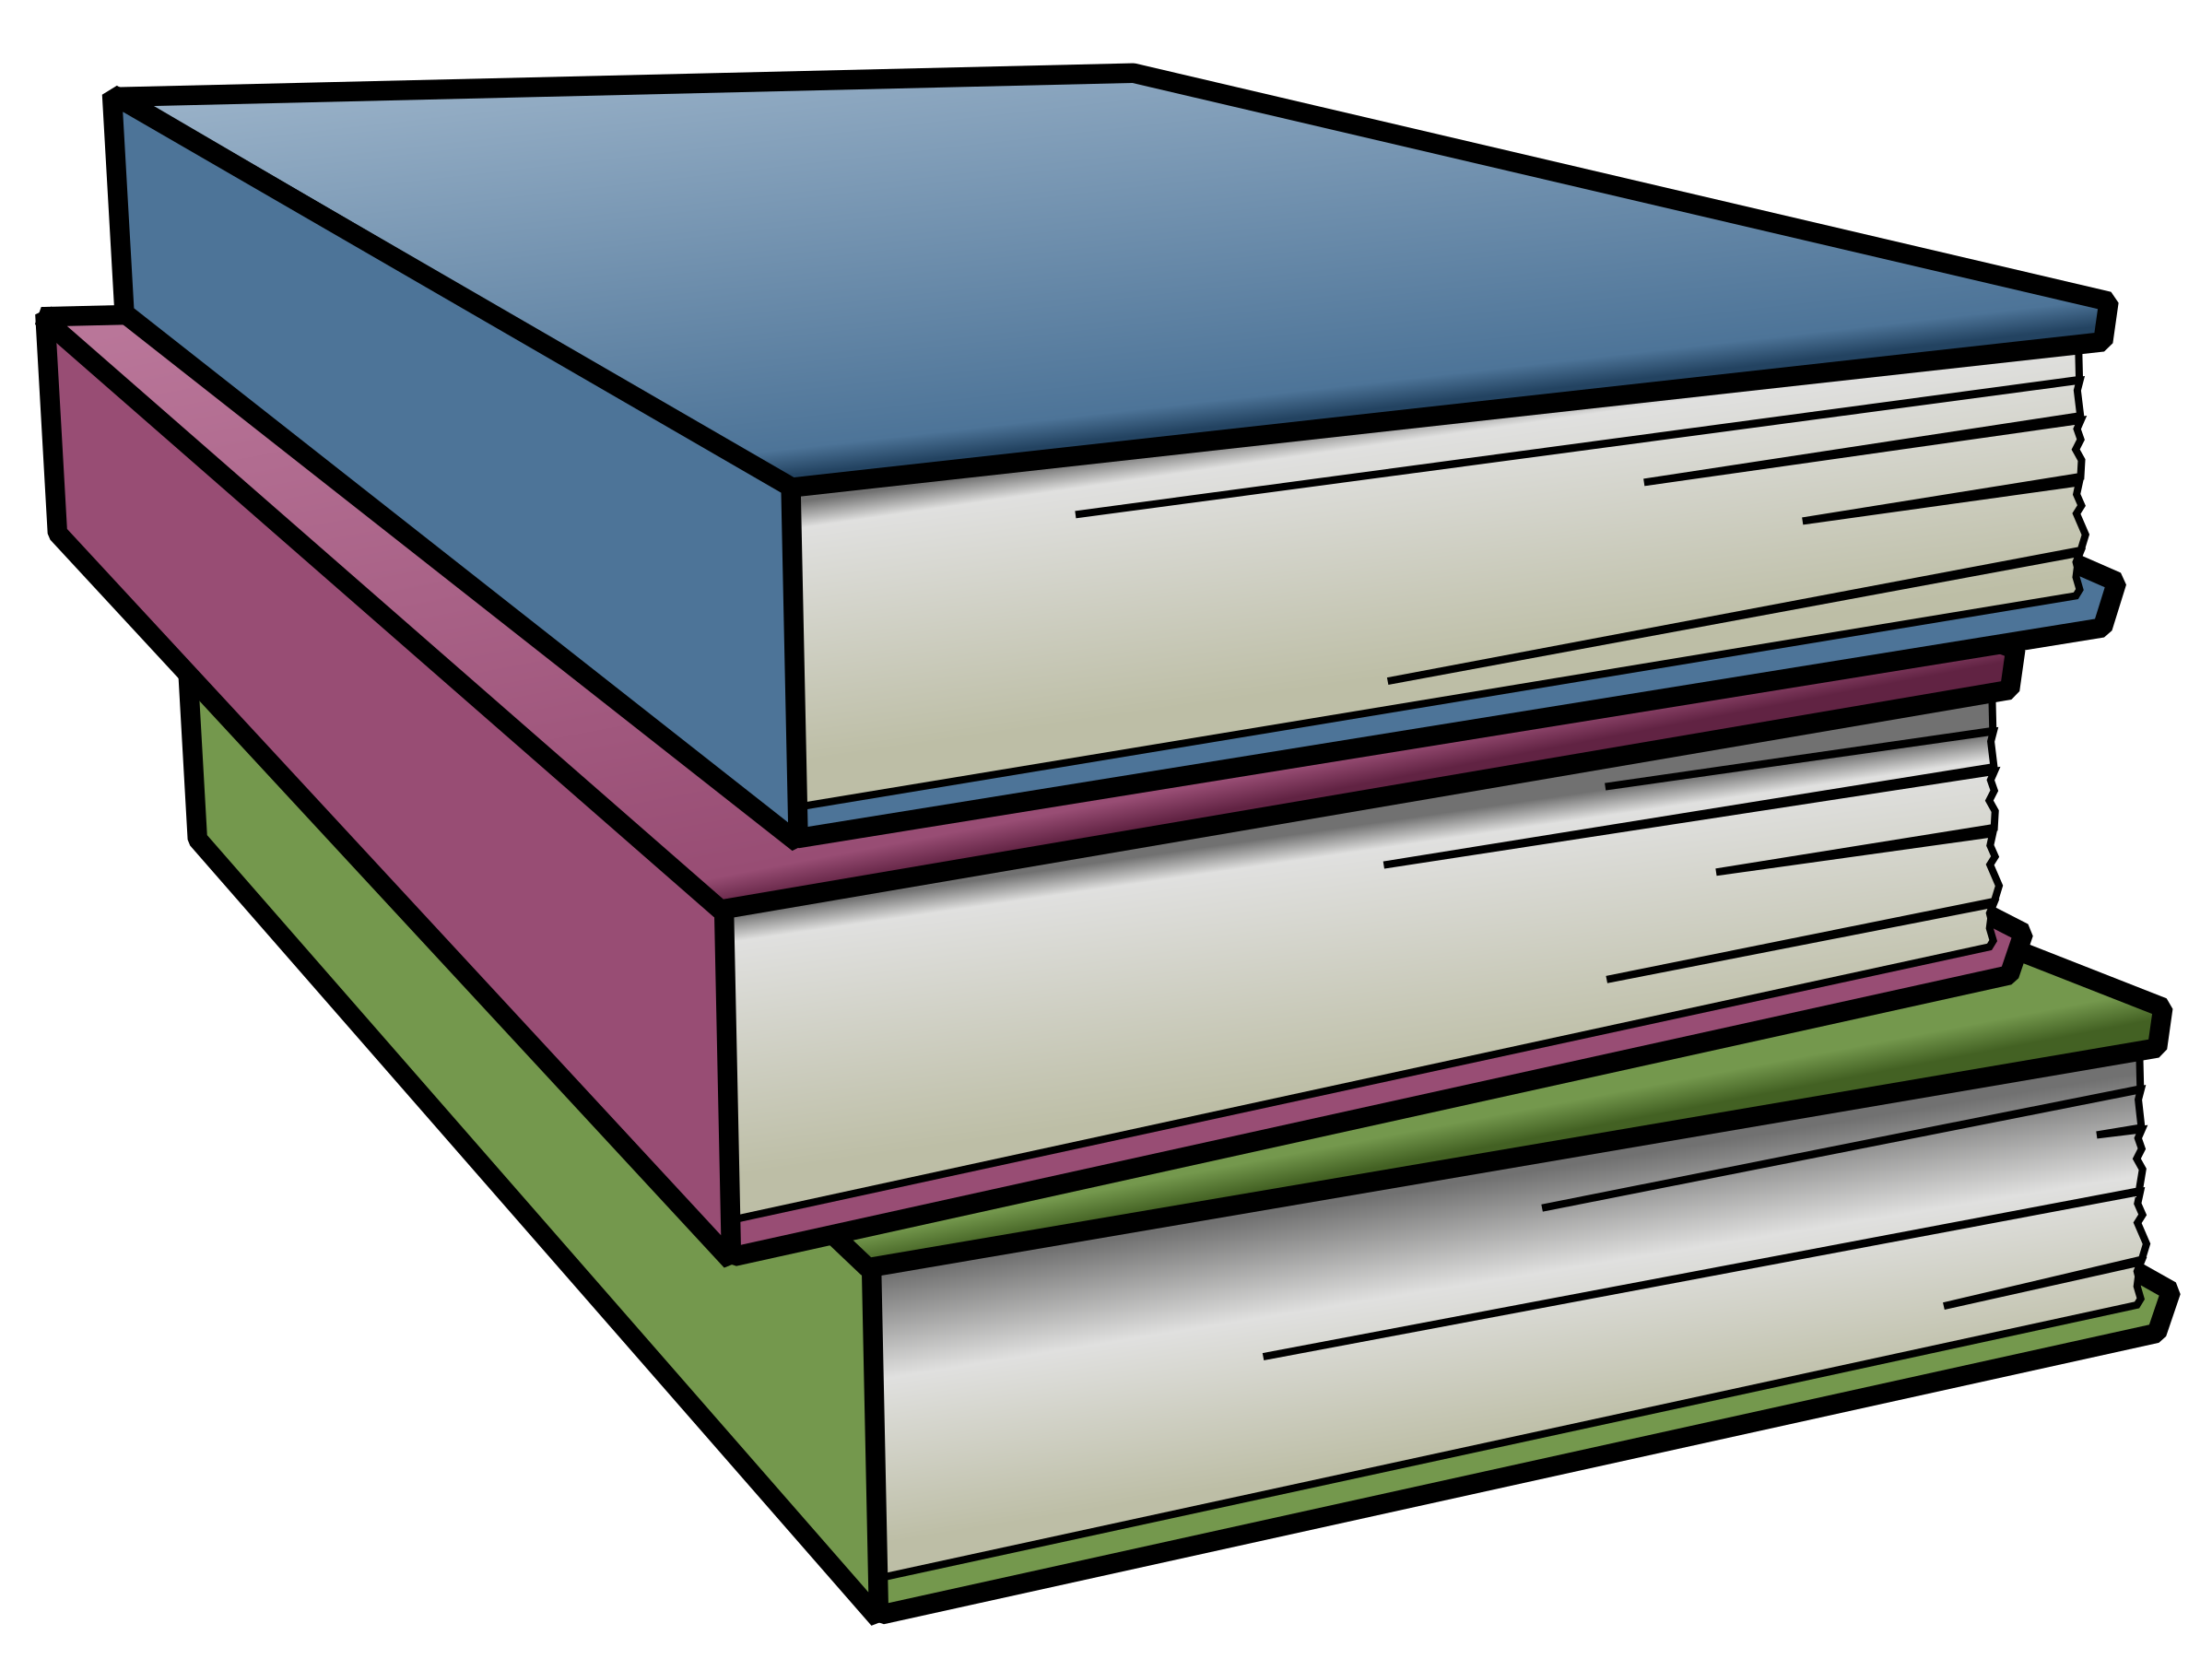 Books big image png. Textbook clipart log book